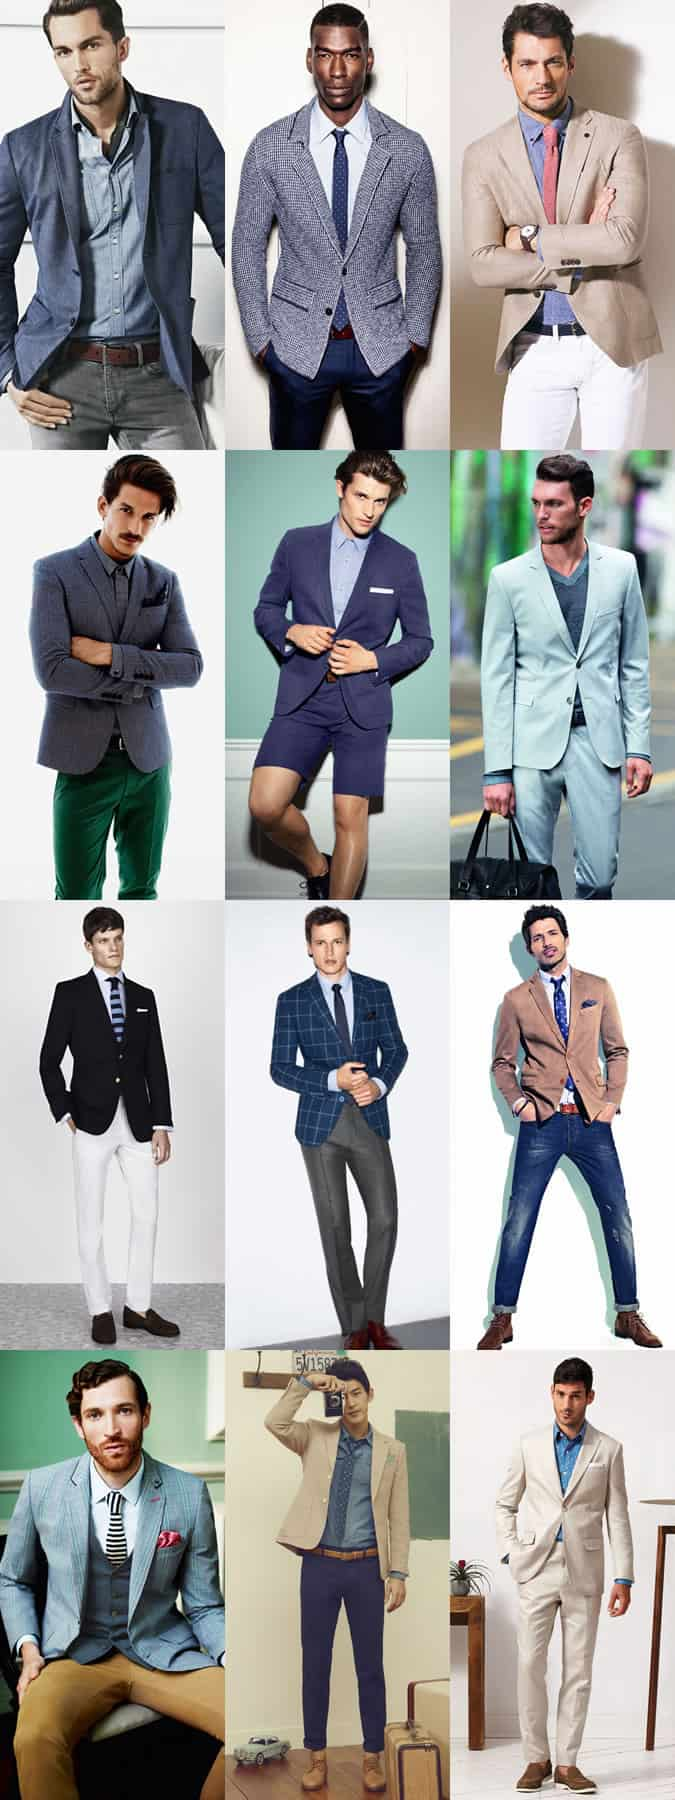 Men's Smart-Casual Office Dress Code Lookbook - Spring/Summer Inspired